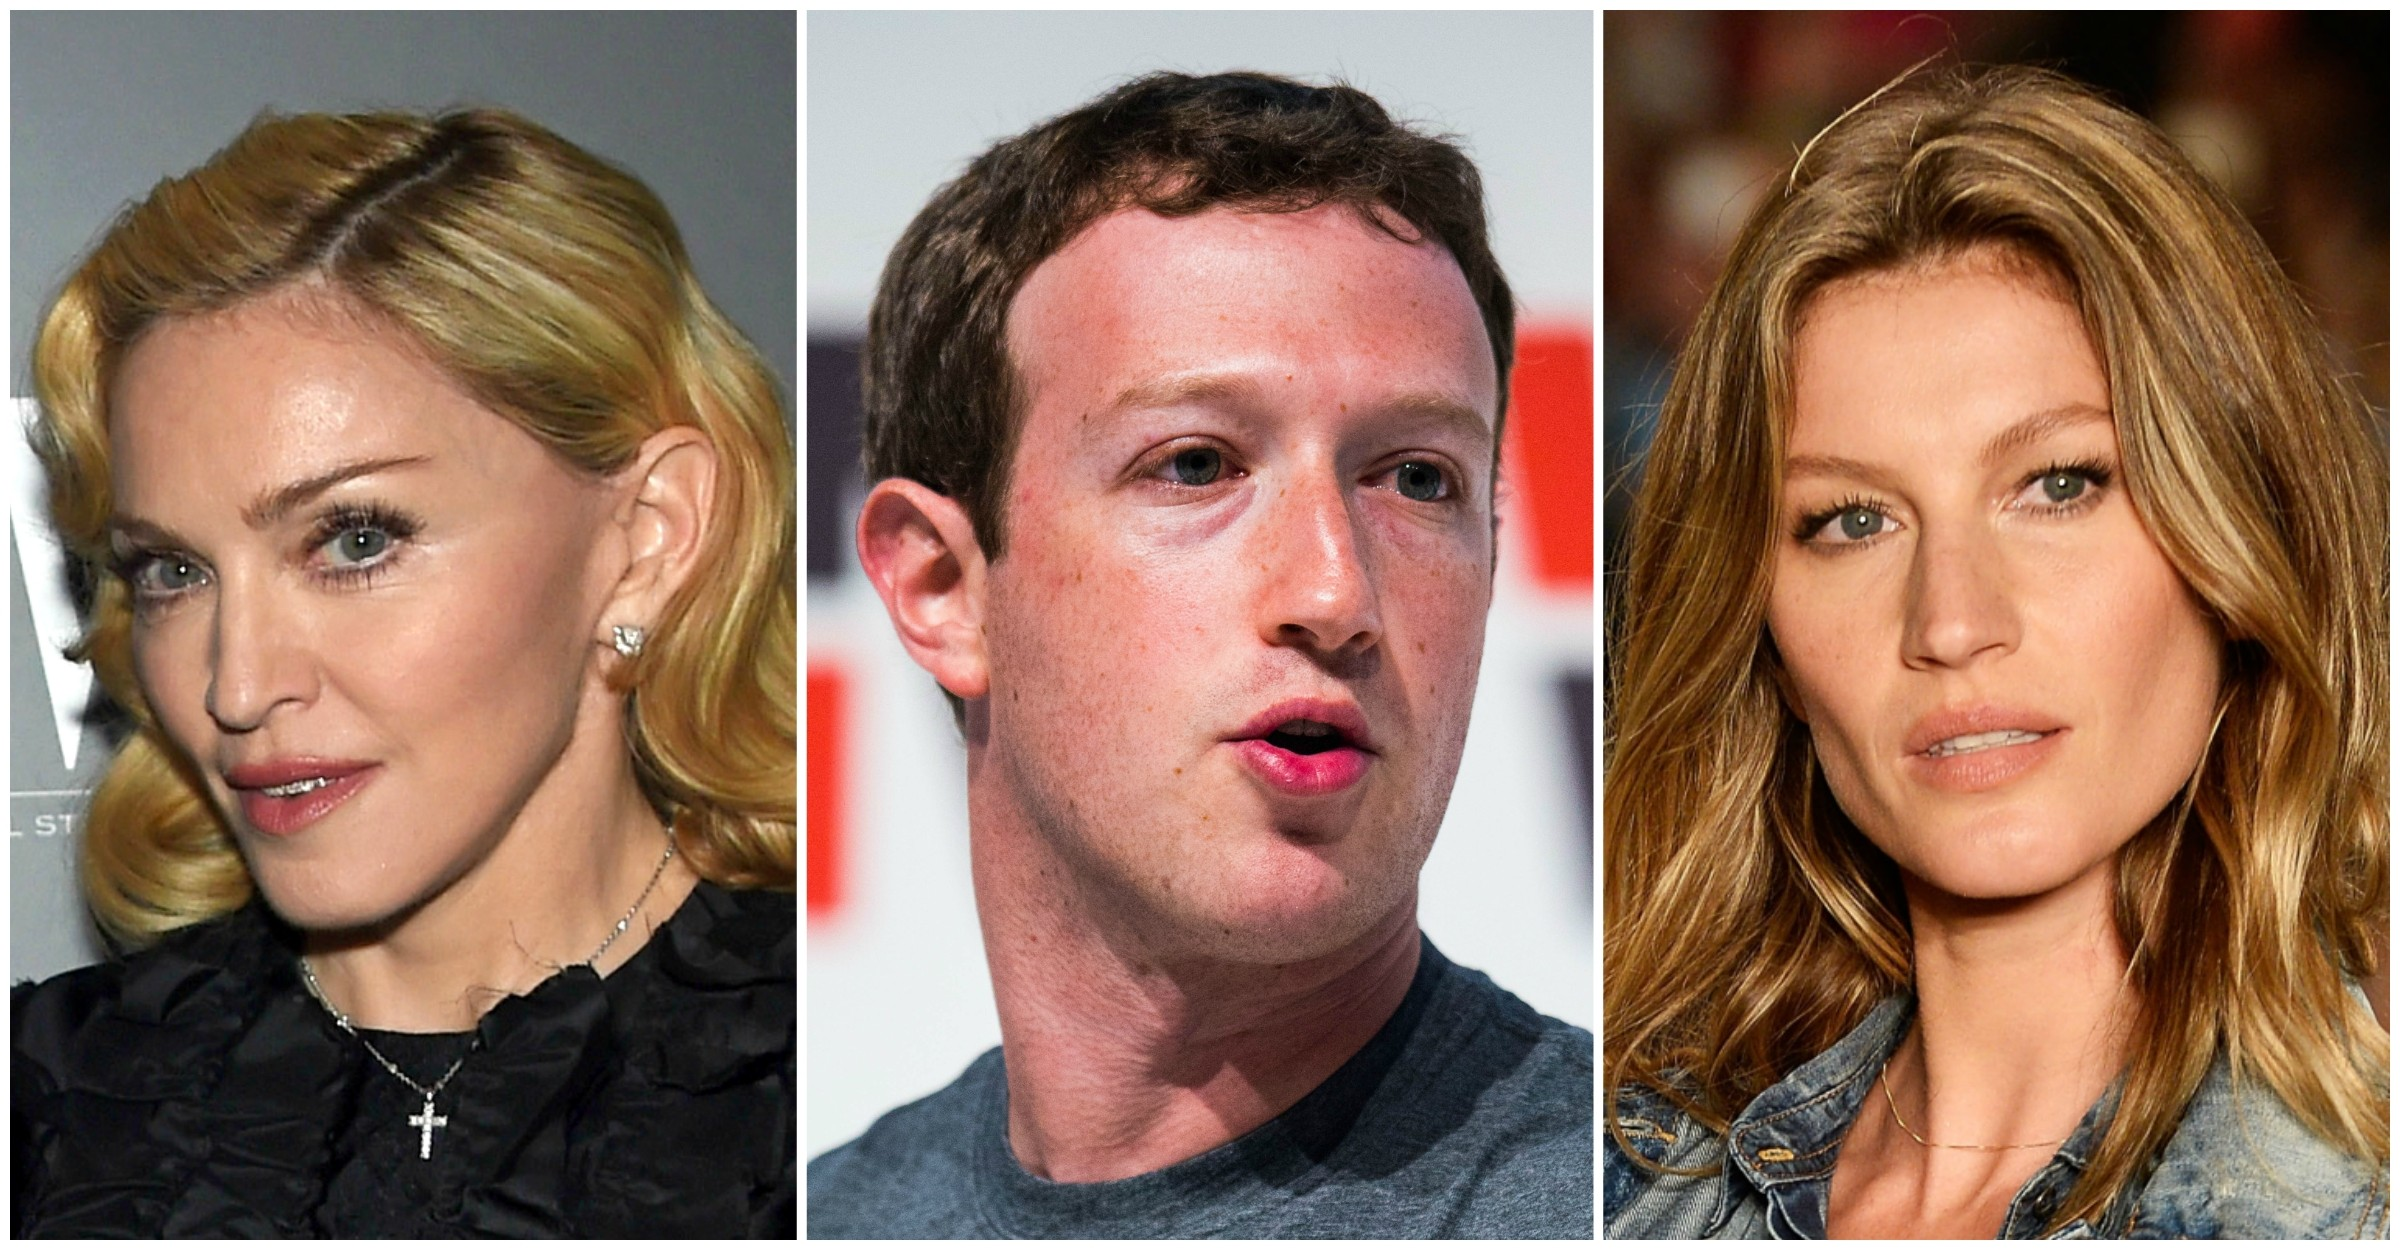 Madonna, Mark Zuckerberg e Gisele Bündchen. (Foto: Getty Images)